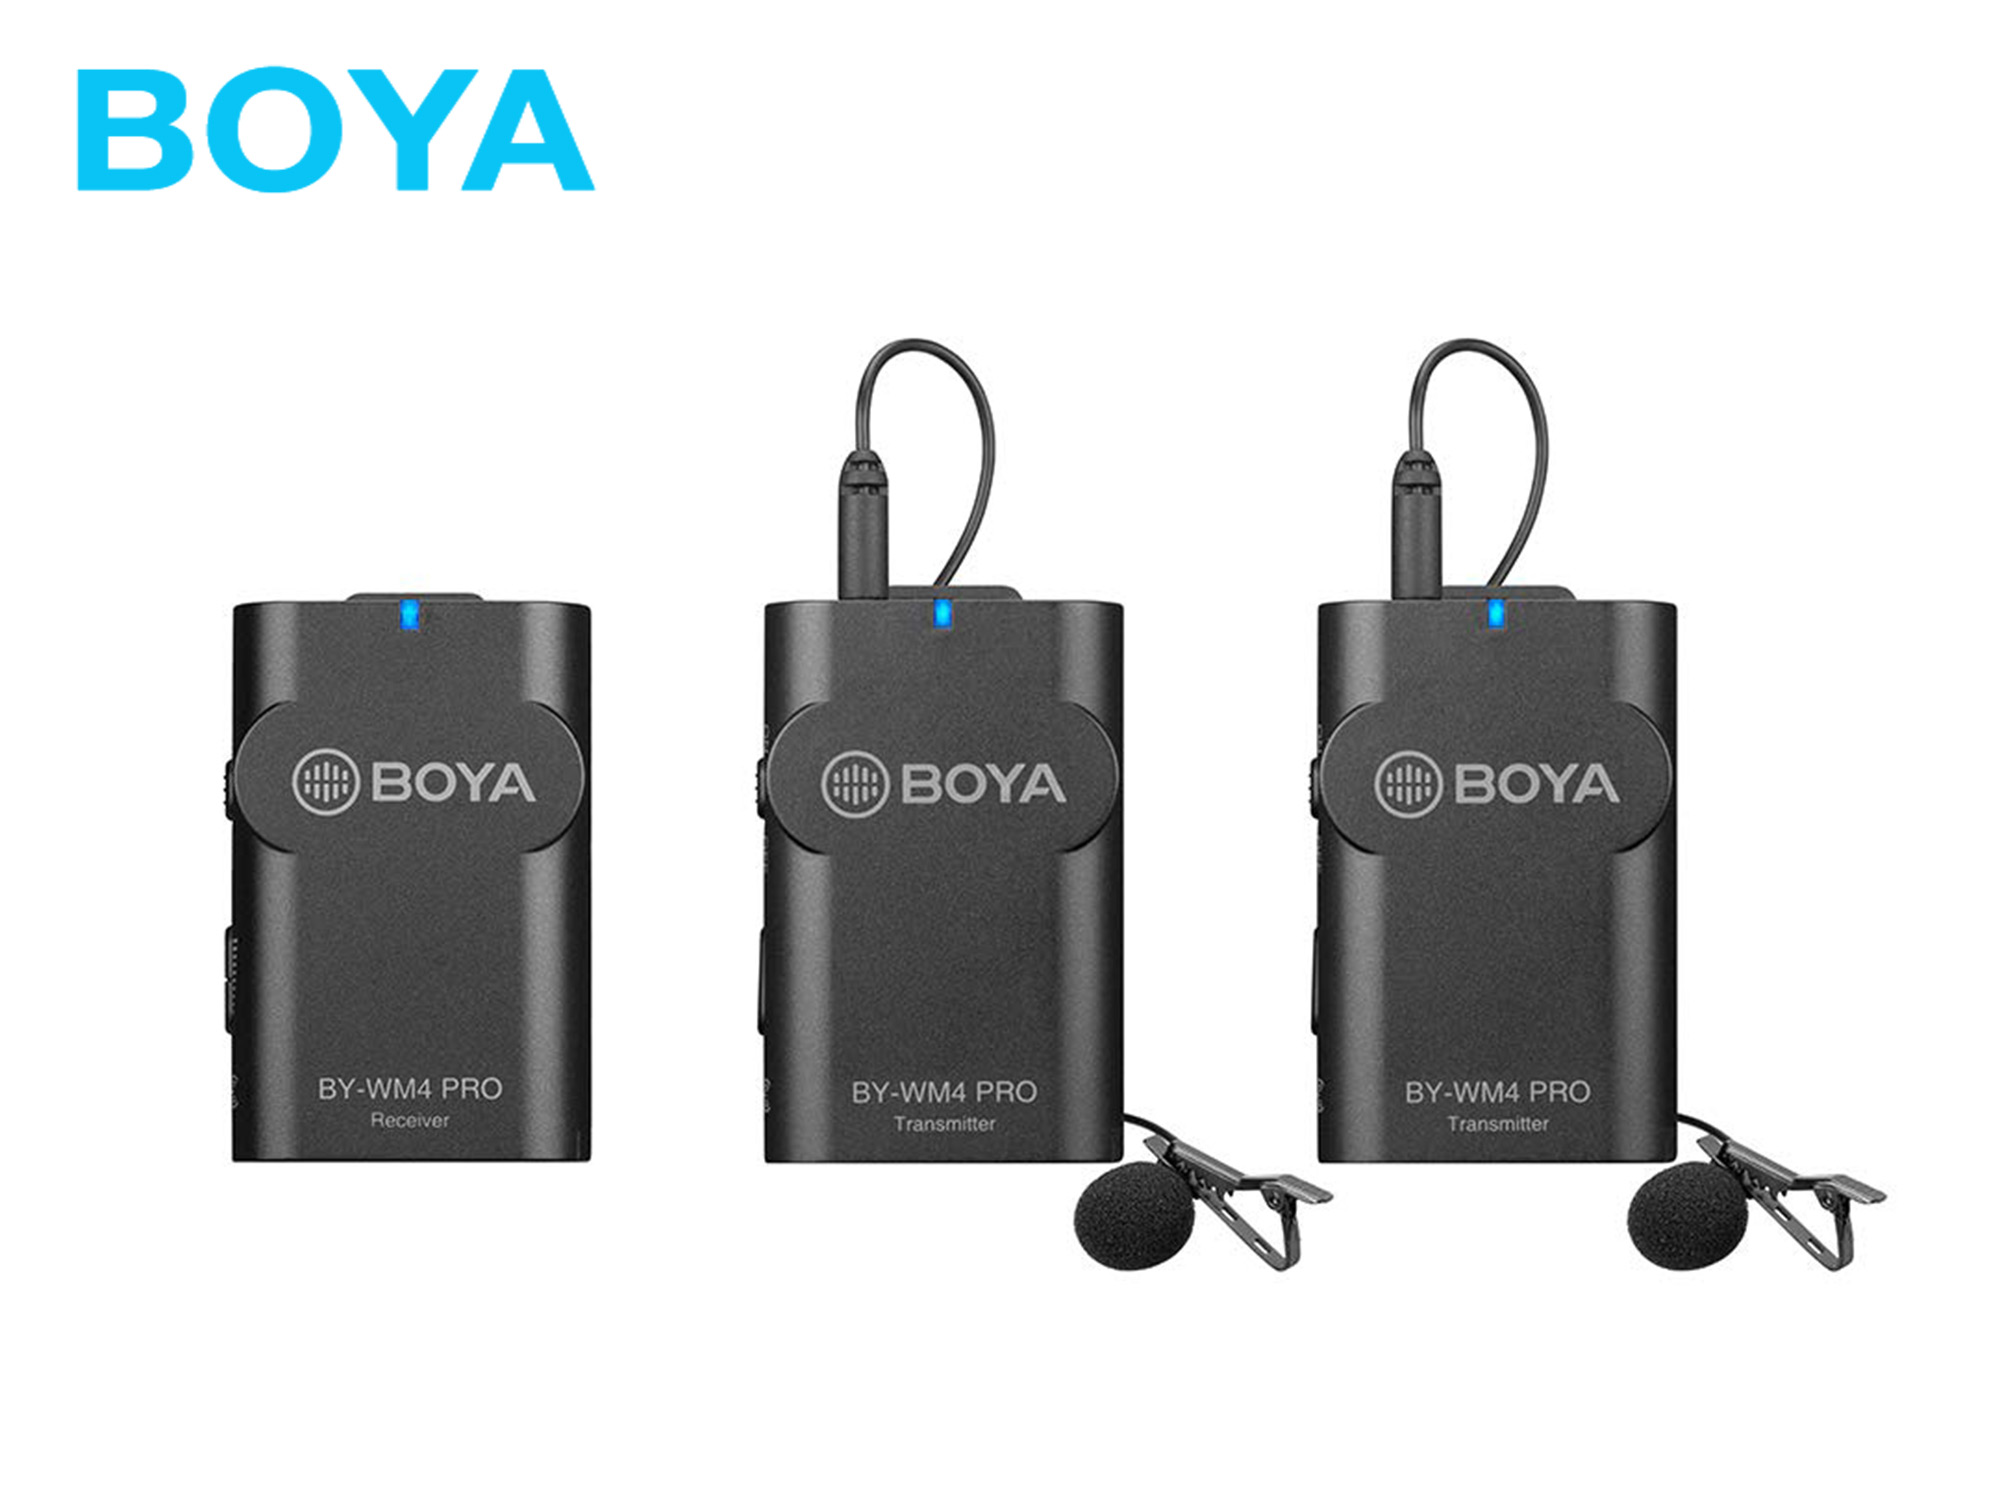 BOYA BY-WM4 Pro K2 Portable 2.4G Wireless Microphone